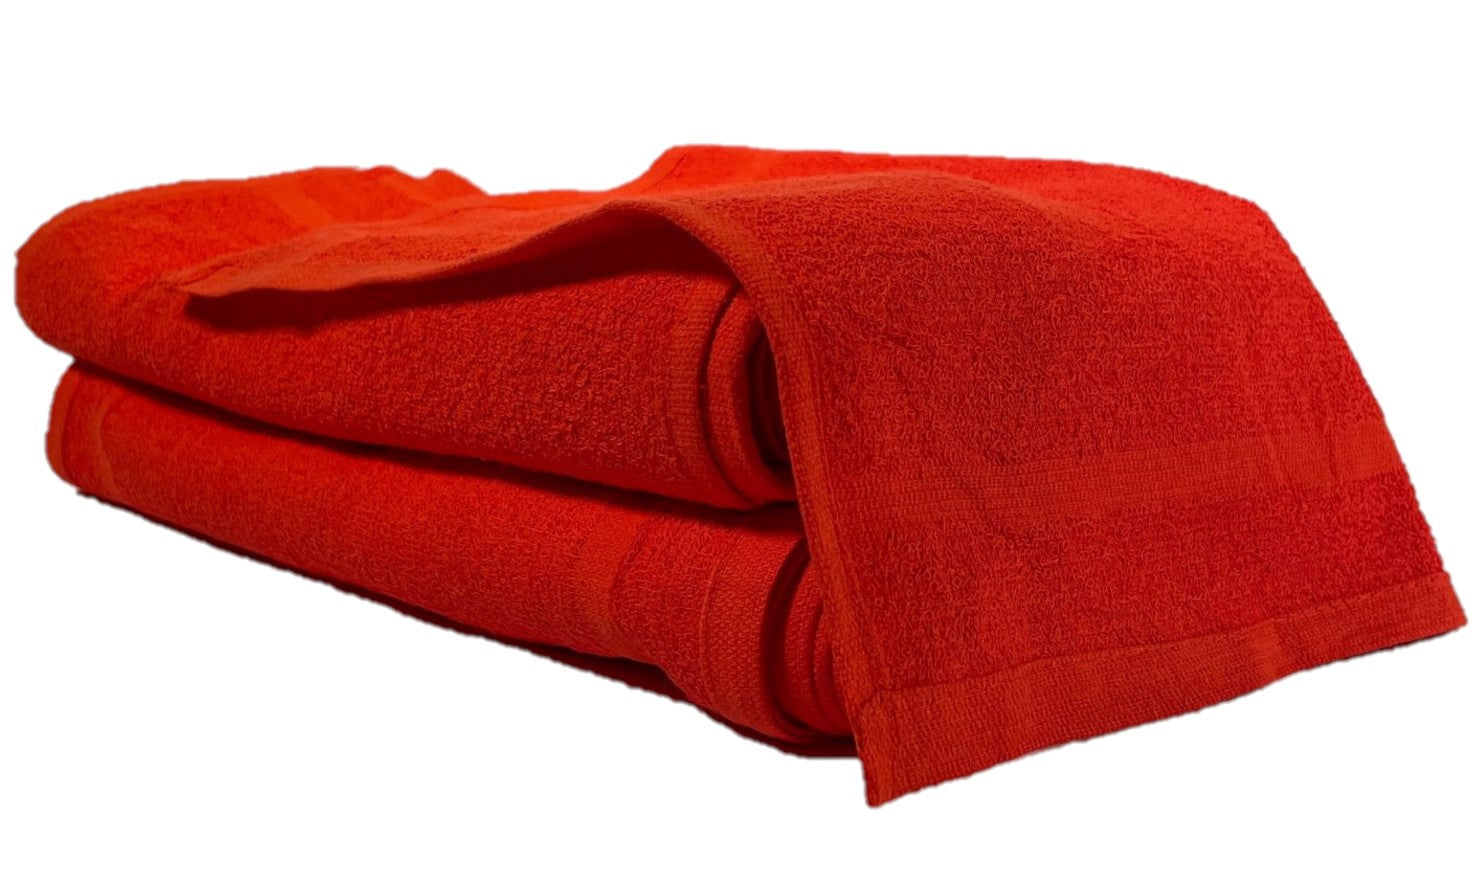 "Partex Essentials™ 12"" x 12"" Towel - Limited Time Pricing"